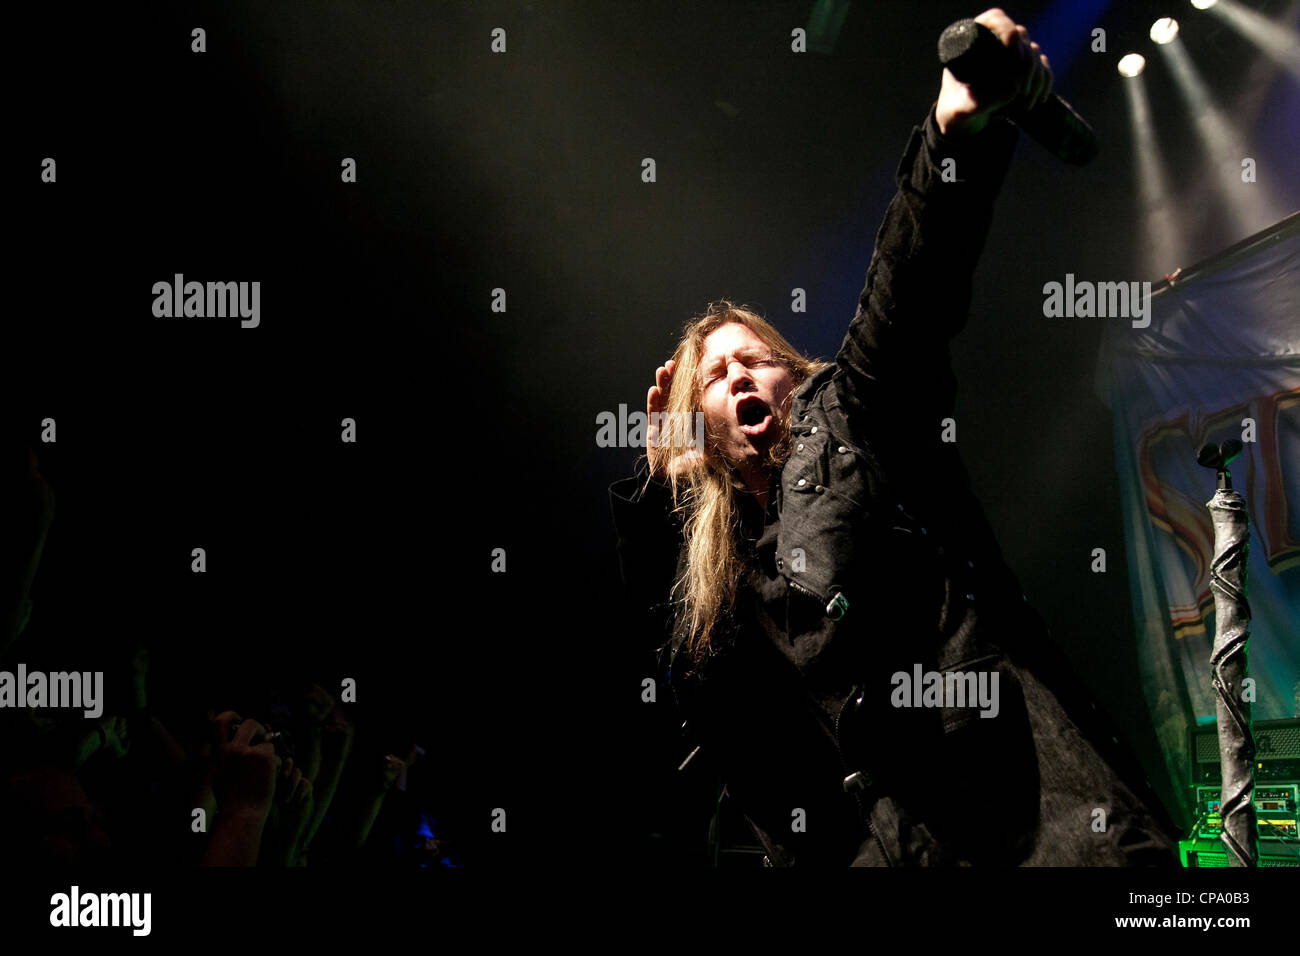 Vocalist of the Stratovarius power metal band Timo Kotipelto listens to the audience in rock concert in Thessaloniki, - Stock Image